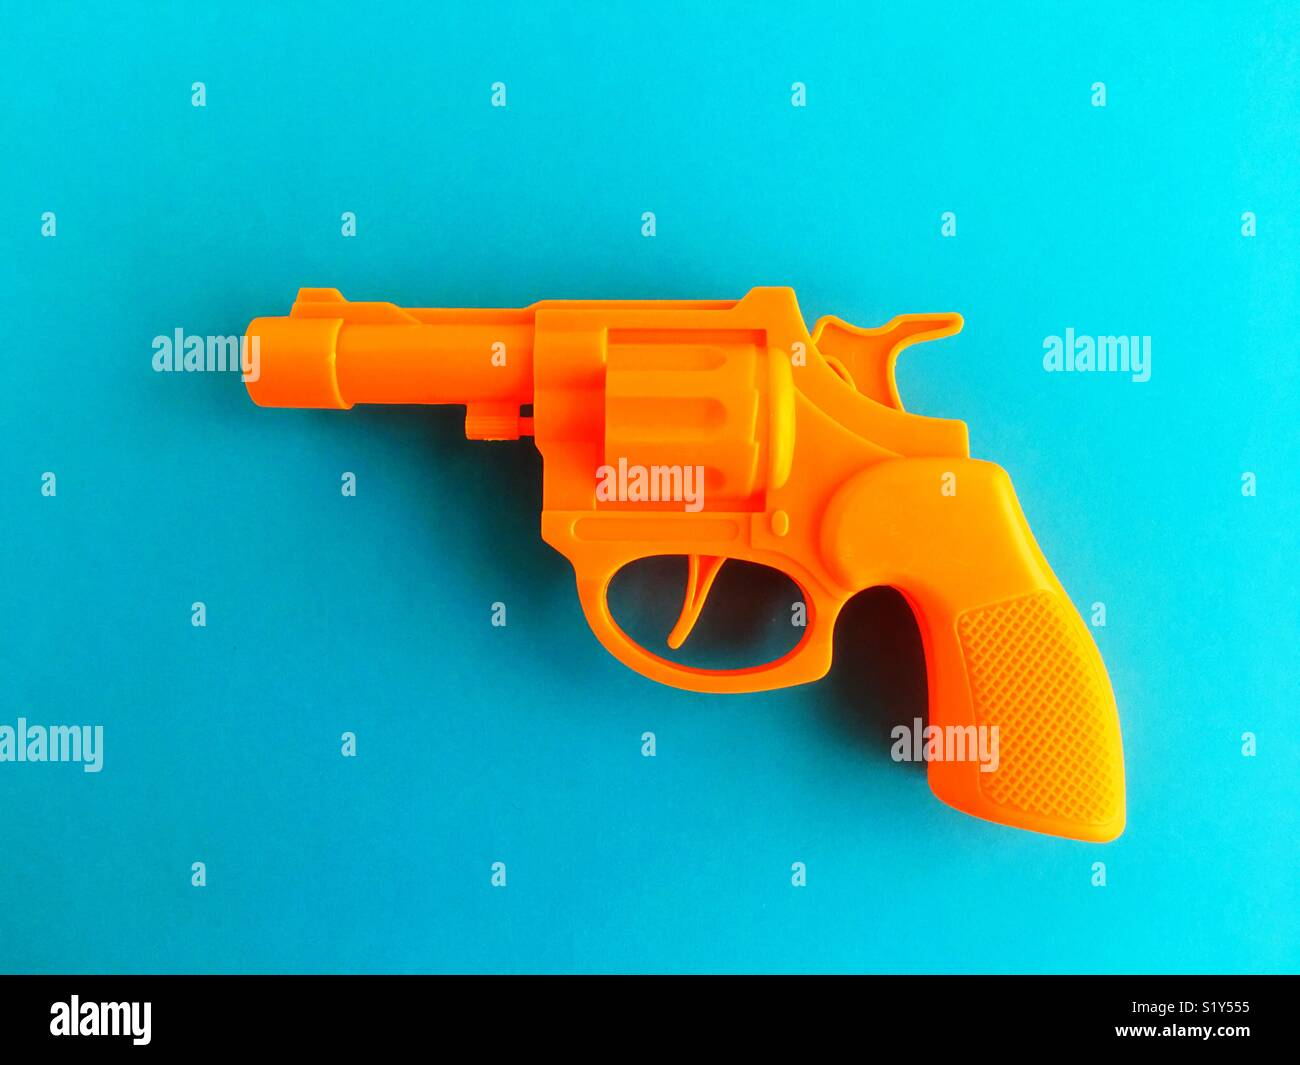 A toy gun. - Stock Image